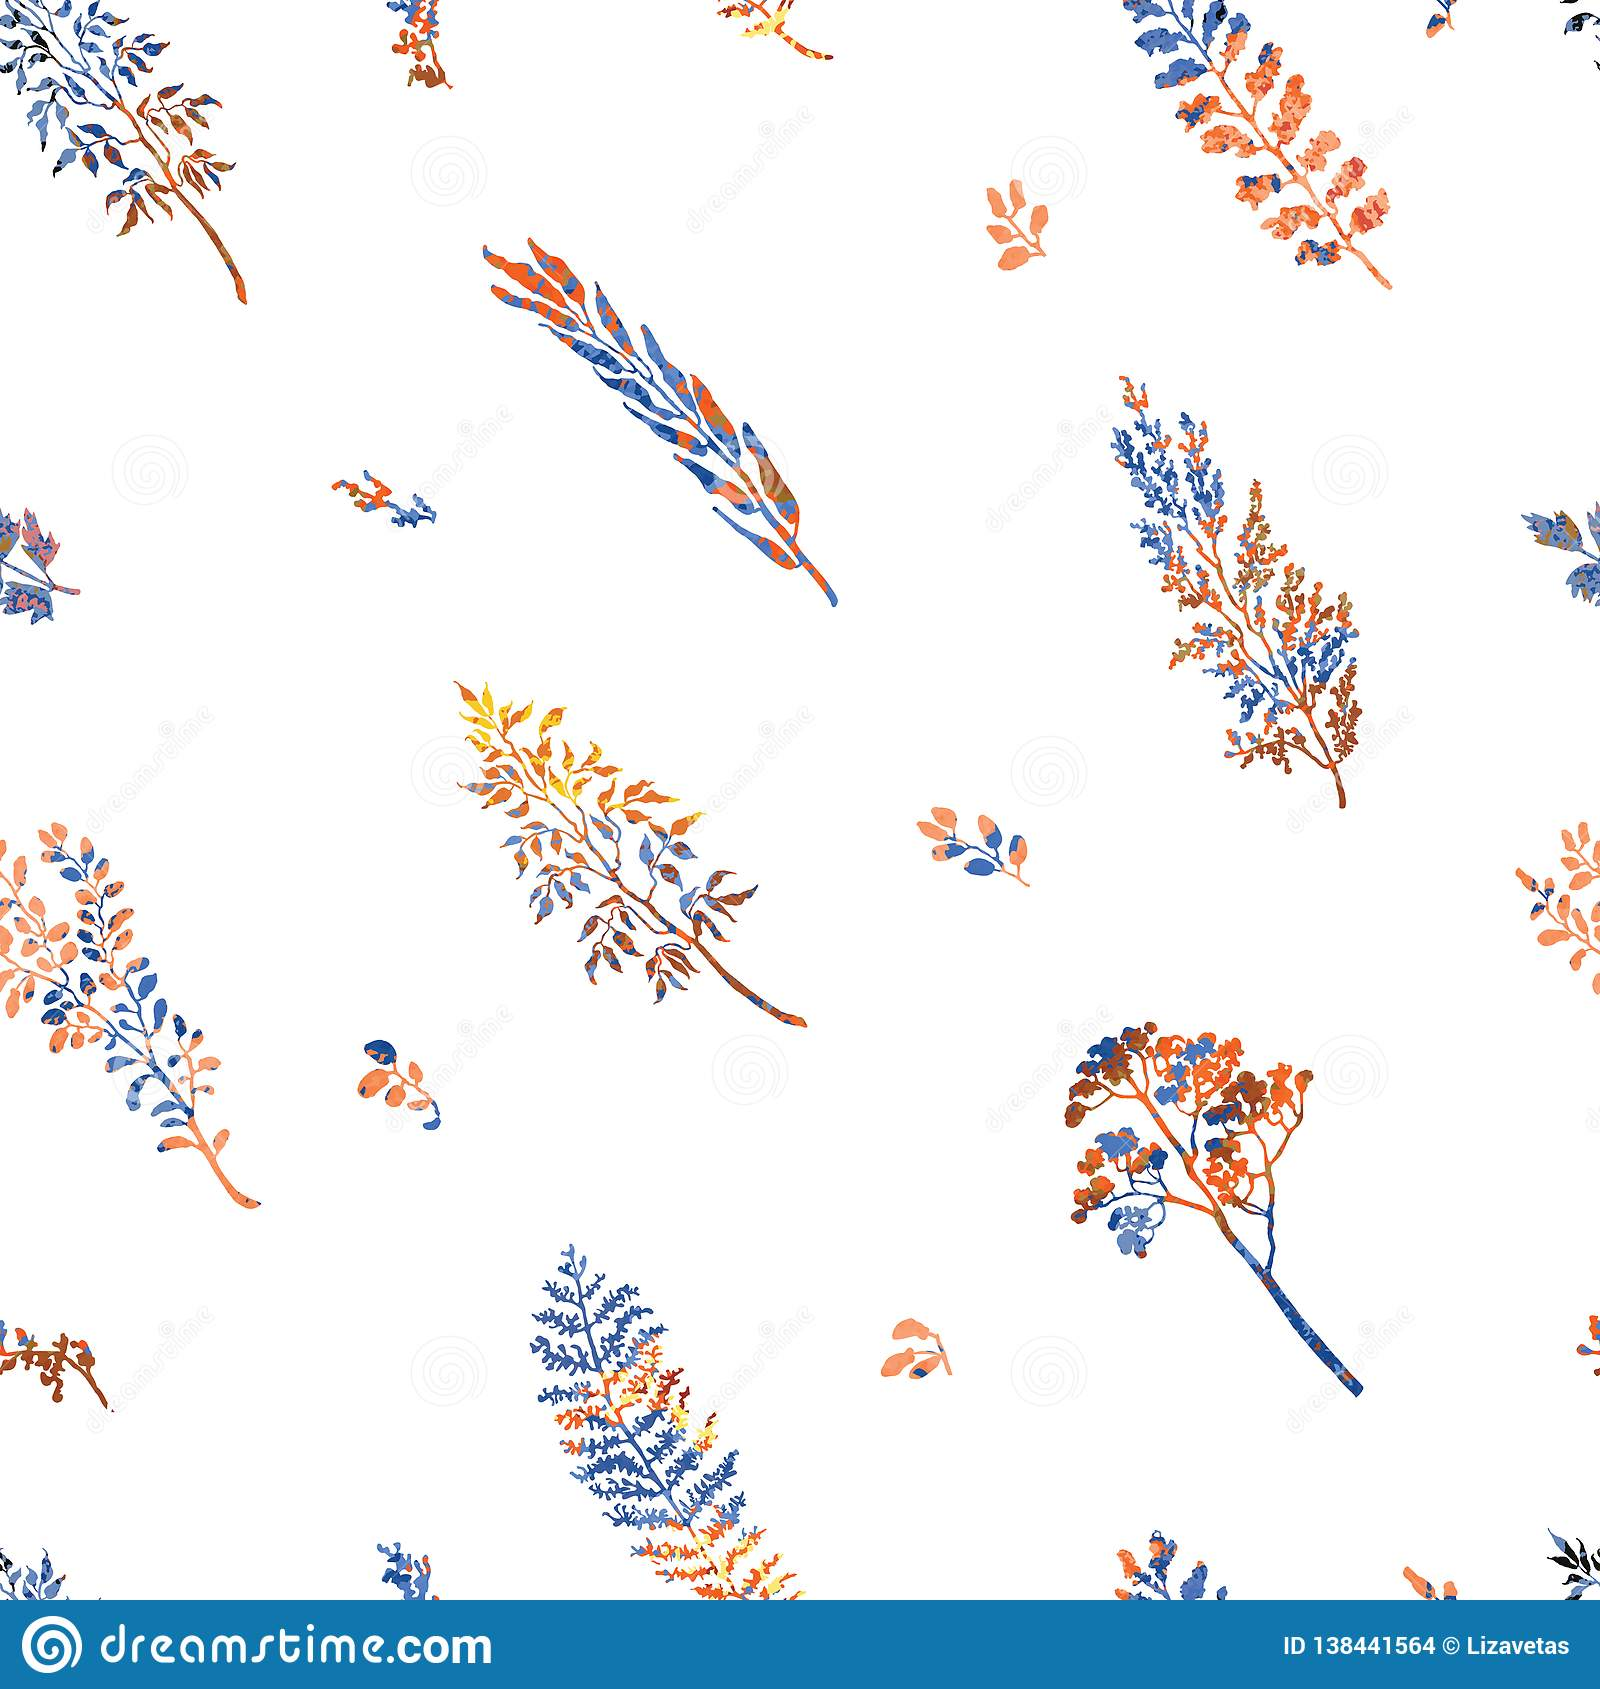 Seamless pattern with herbs, plants and flowers